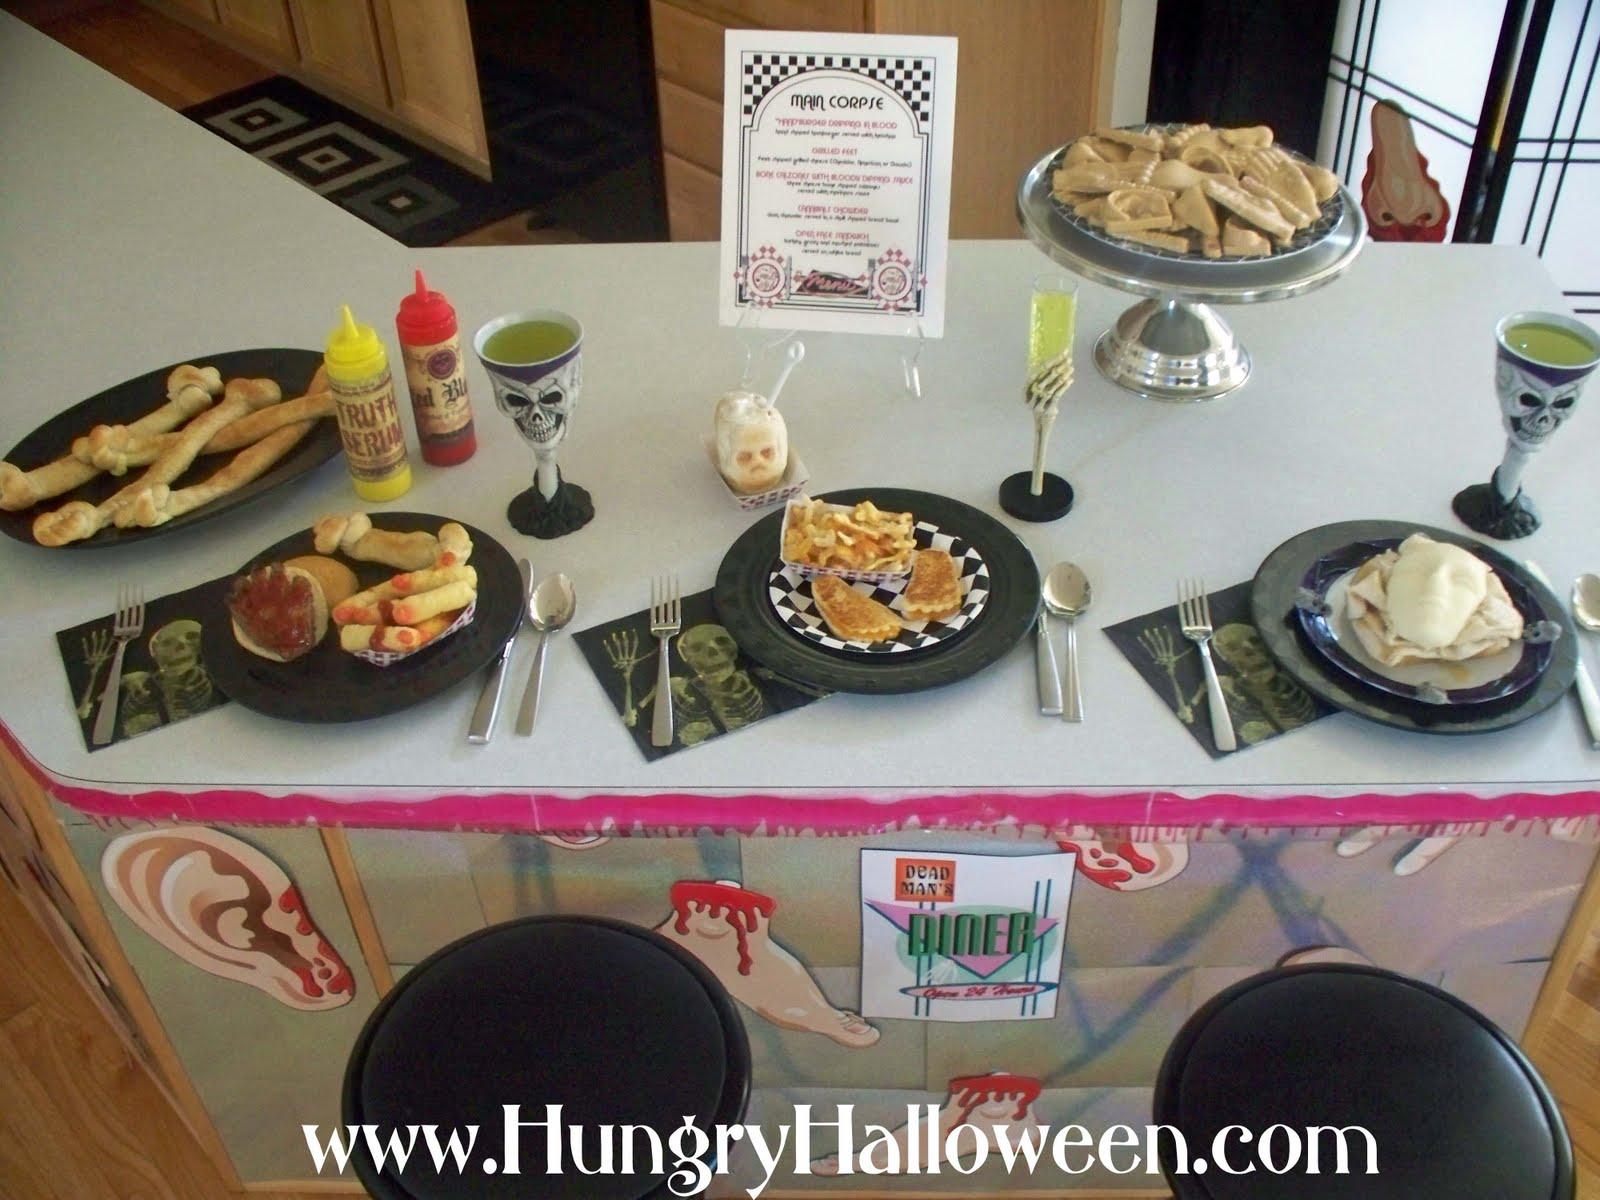 Gruesome food and decorating ideas for your halloween party ...